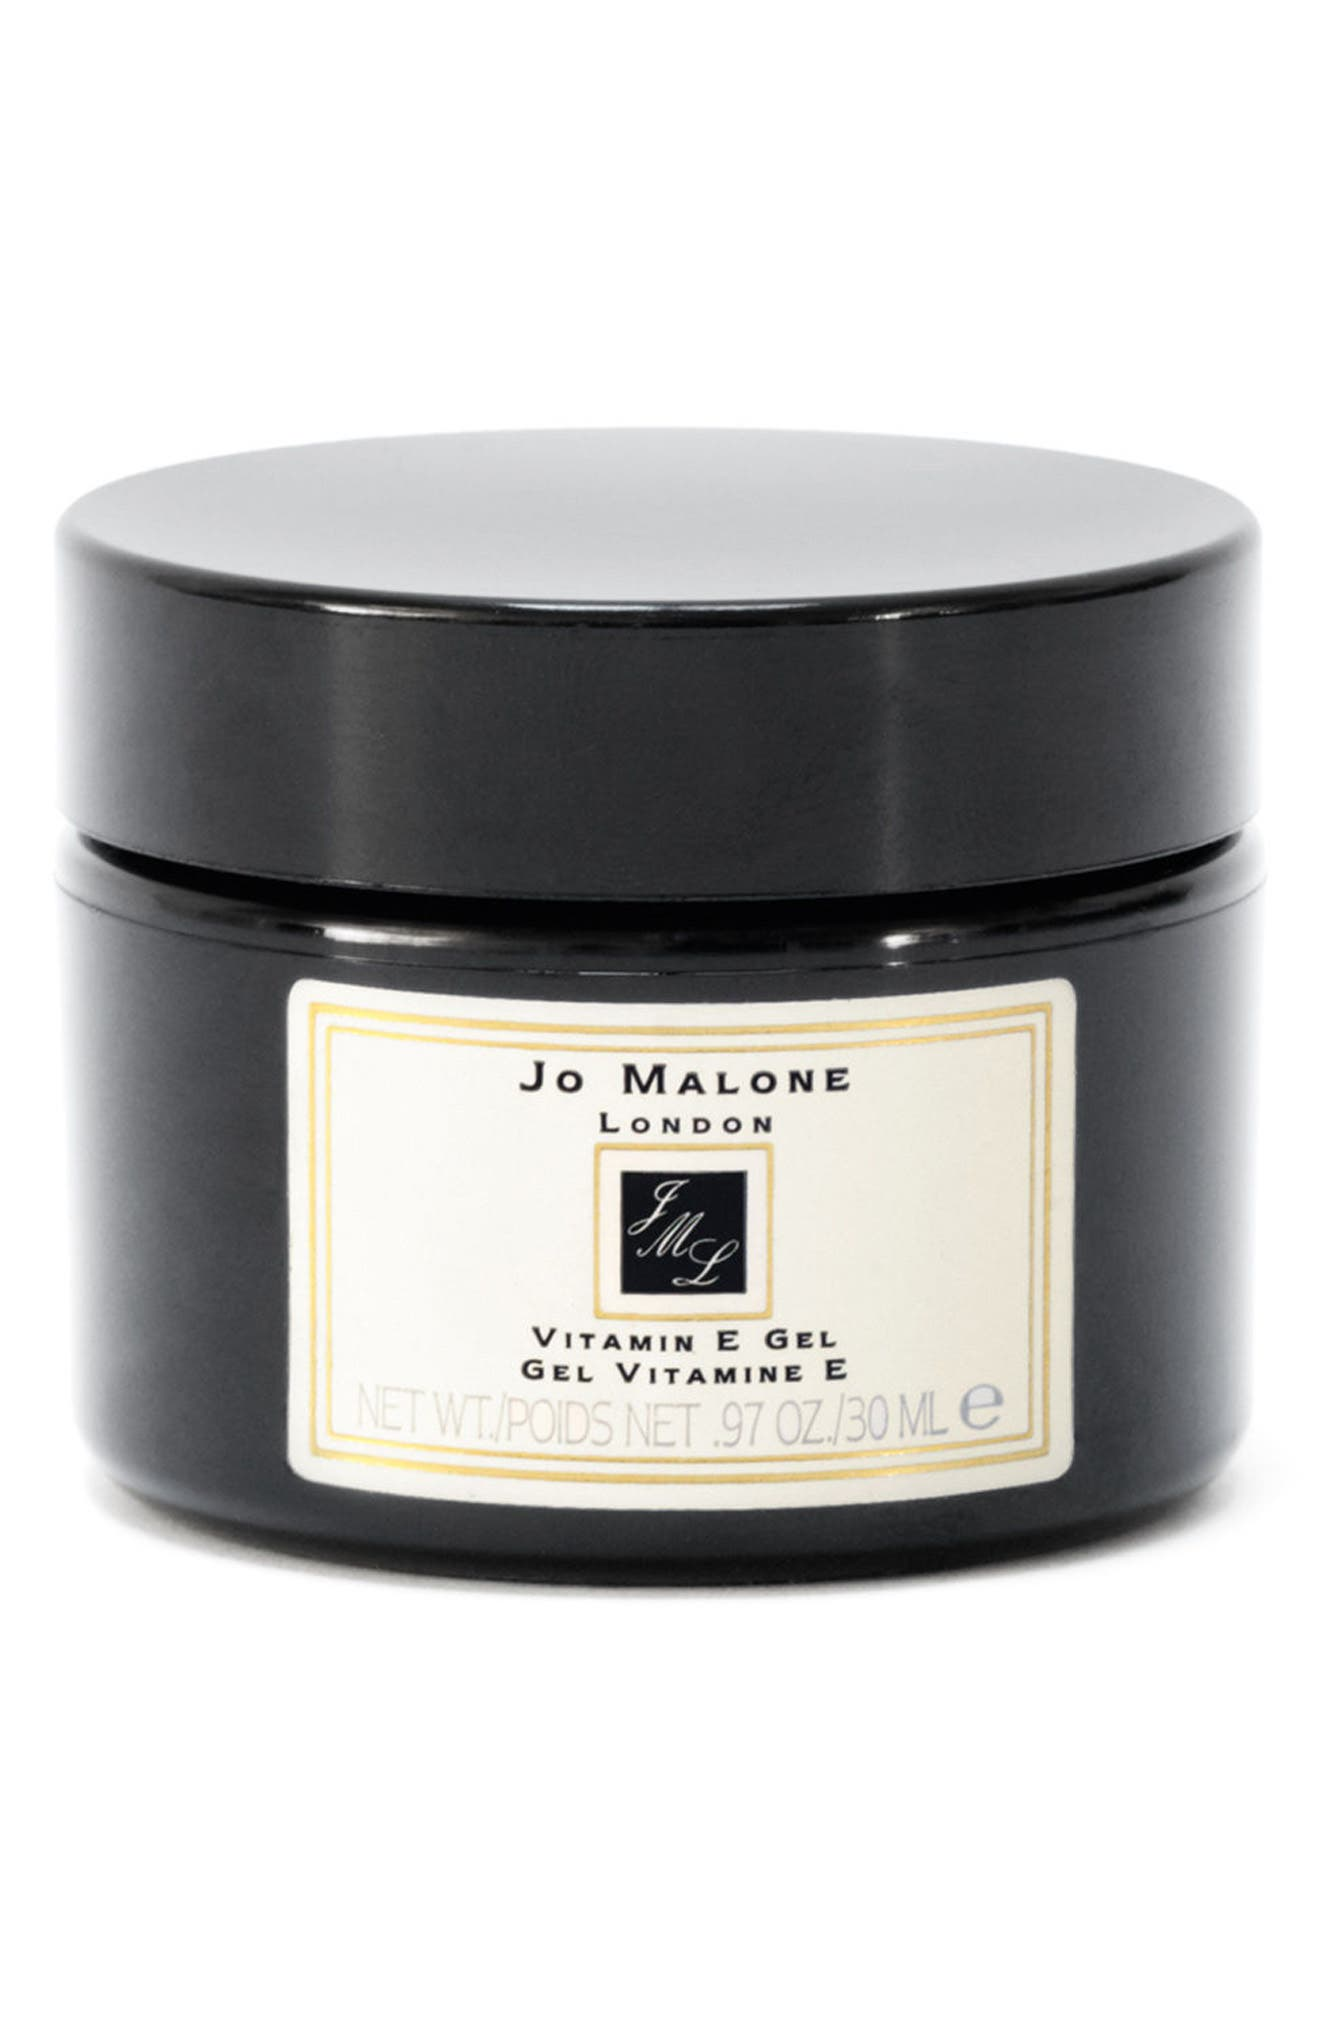 Alternate Image 1 Selected - Jo Malone London™ 'Vitamin E' Gel